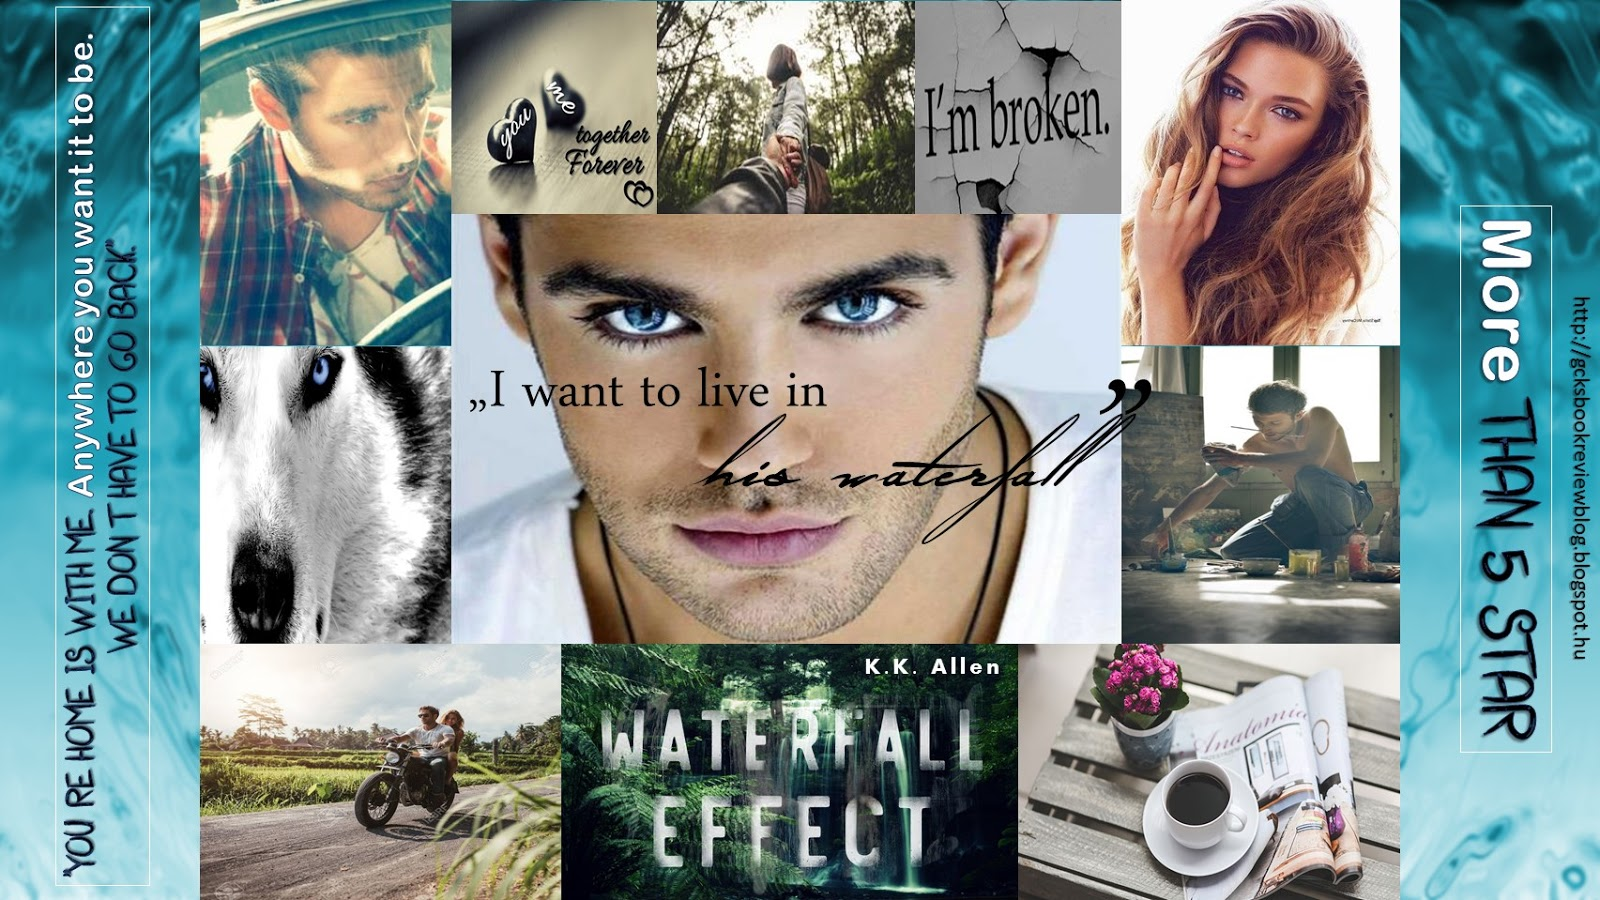 ARC Review - Waterfall Effect by K.K. Allen